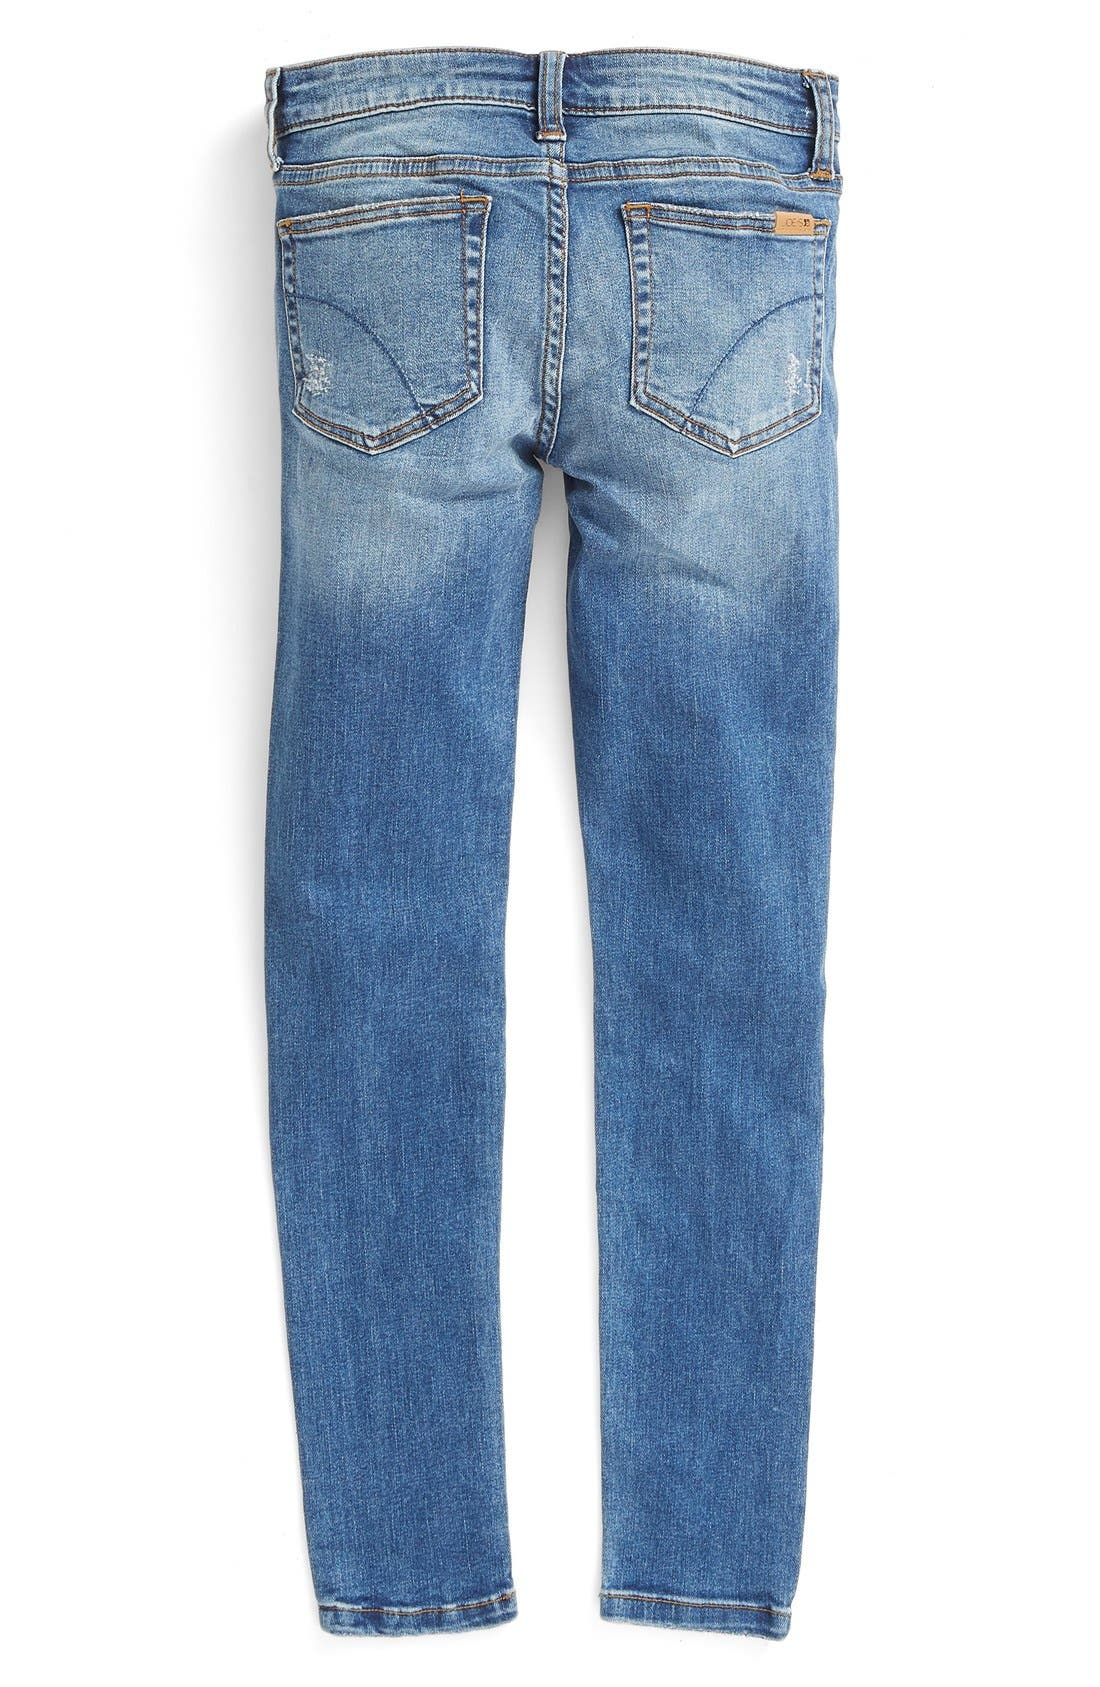 'Dawn' Distressed Jeans,                             Alternate thumbnail 2, color,                             456